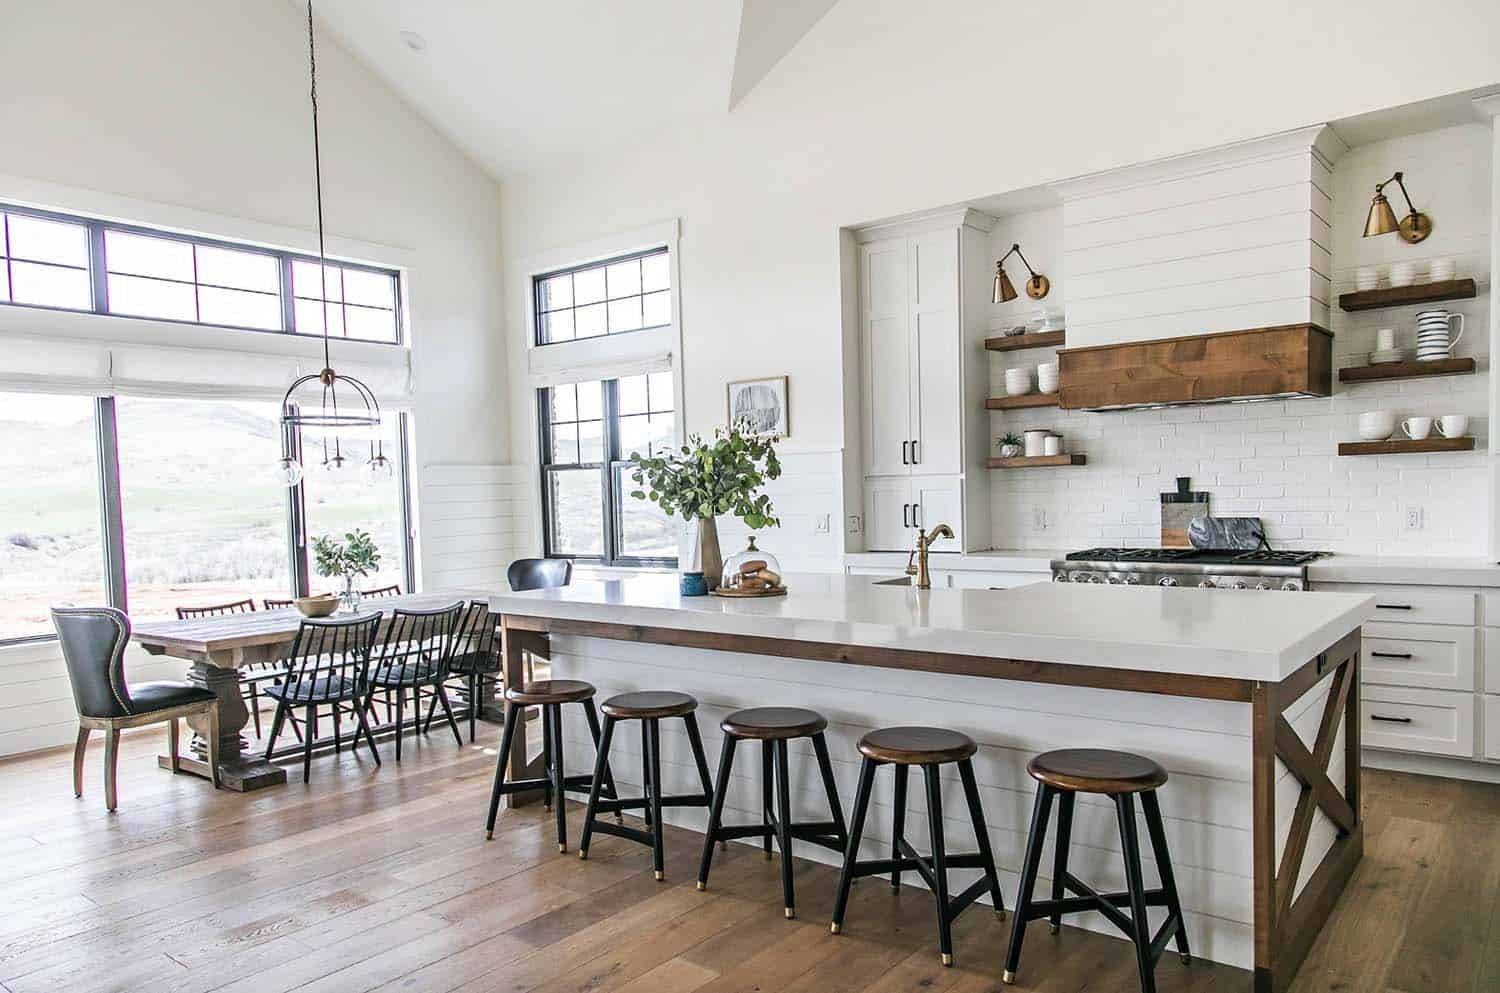 Modern farmhouse style in utah features stylish living spaces for Modern farmhouse style